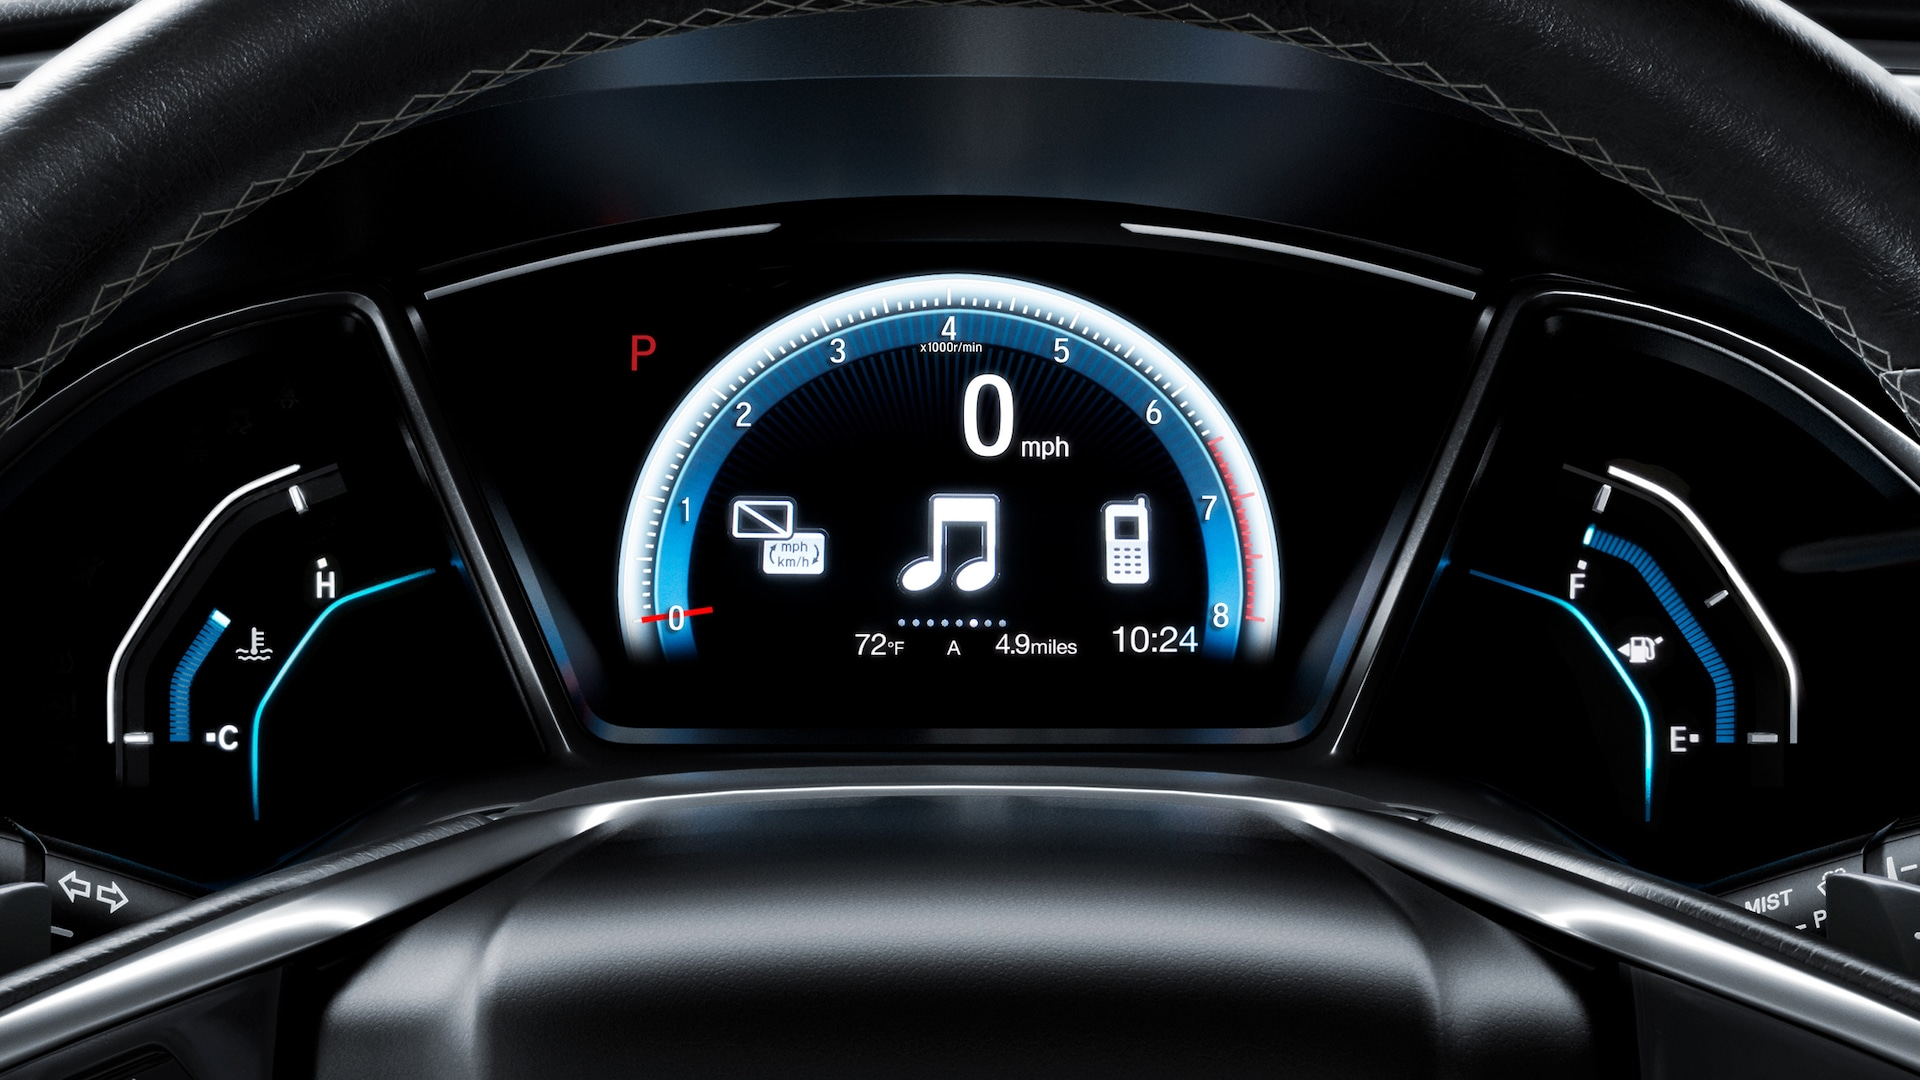 Driver Information Interface detail in the 2021 Honda Civic Touring Sedan.